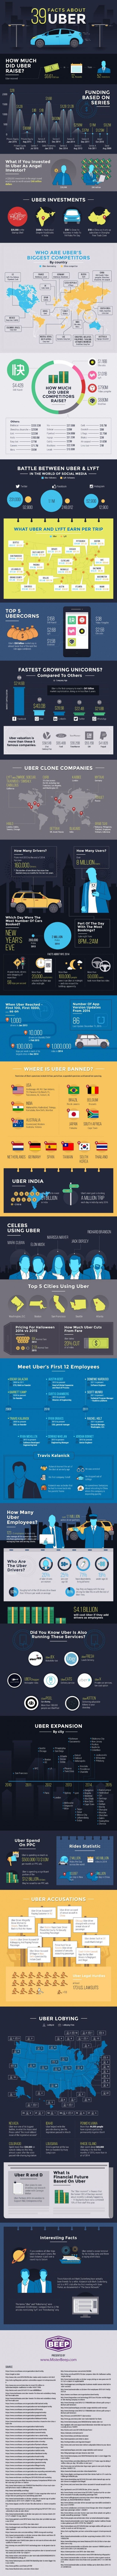 39 Uber Facts and the One Thats Missing